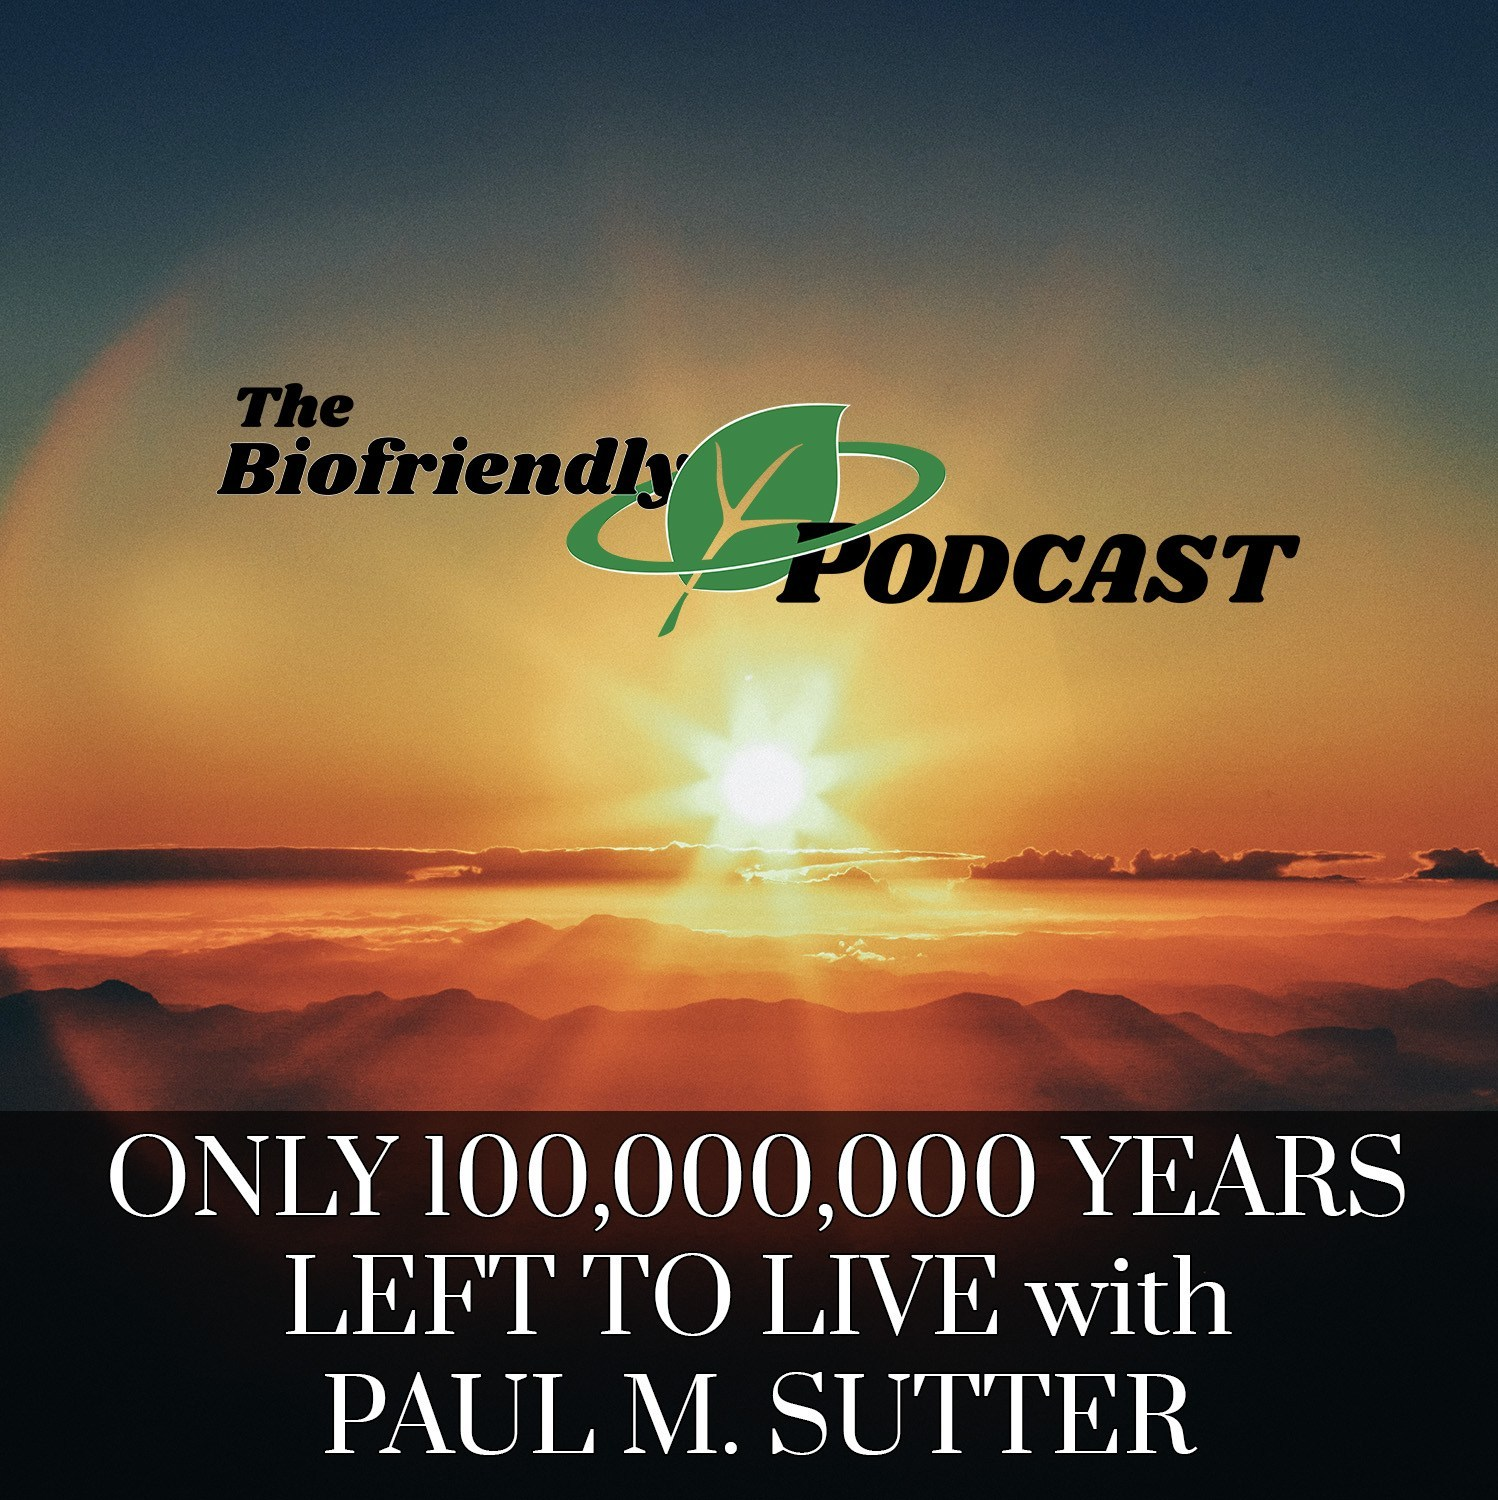 Just 100,000,000 Years Left To Live with Paul M. Sutter